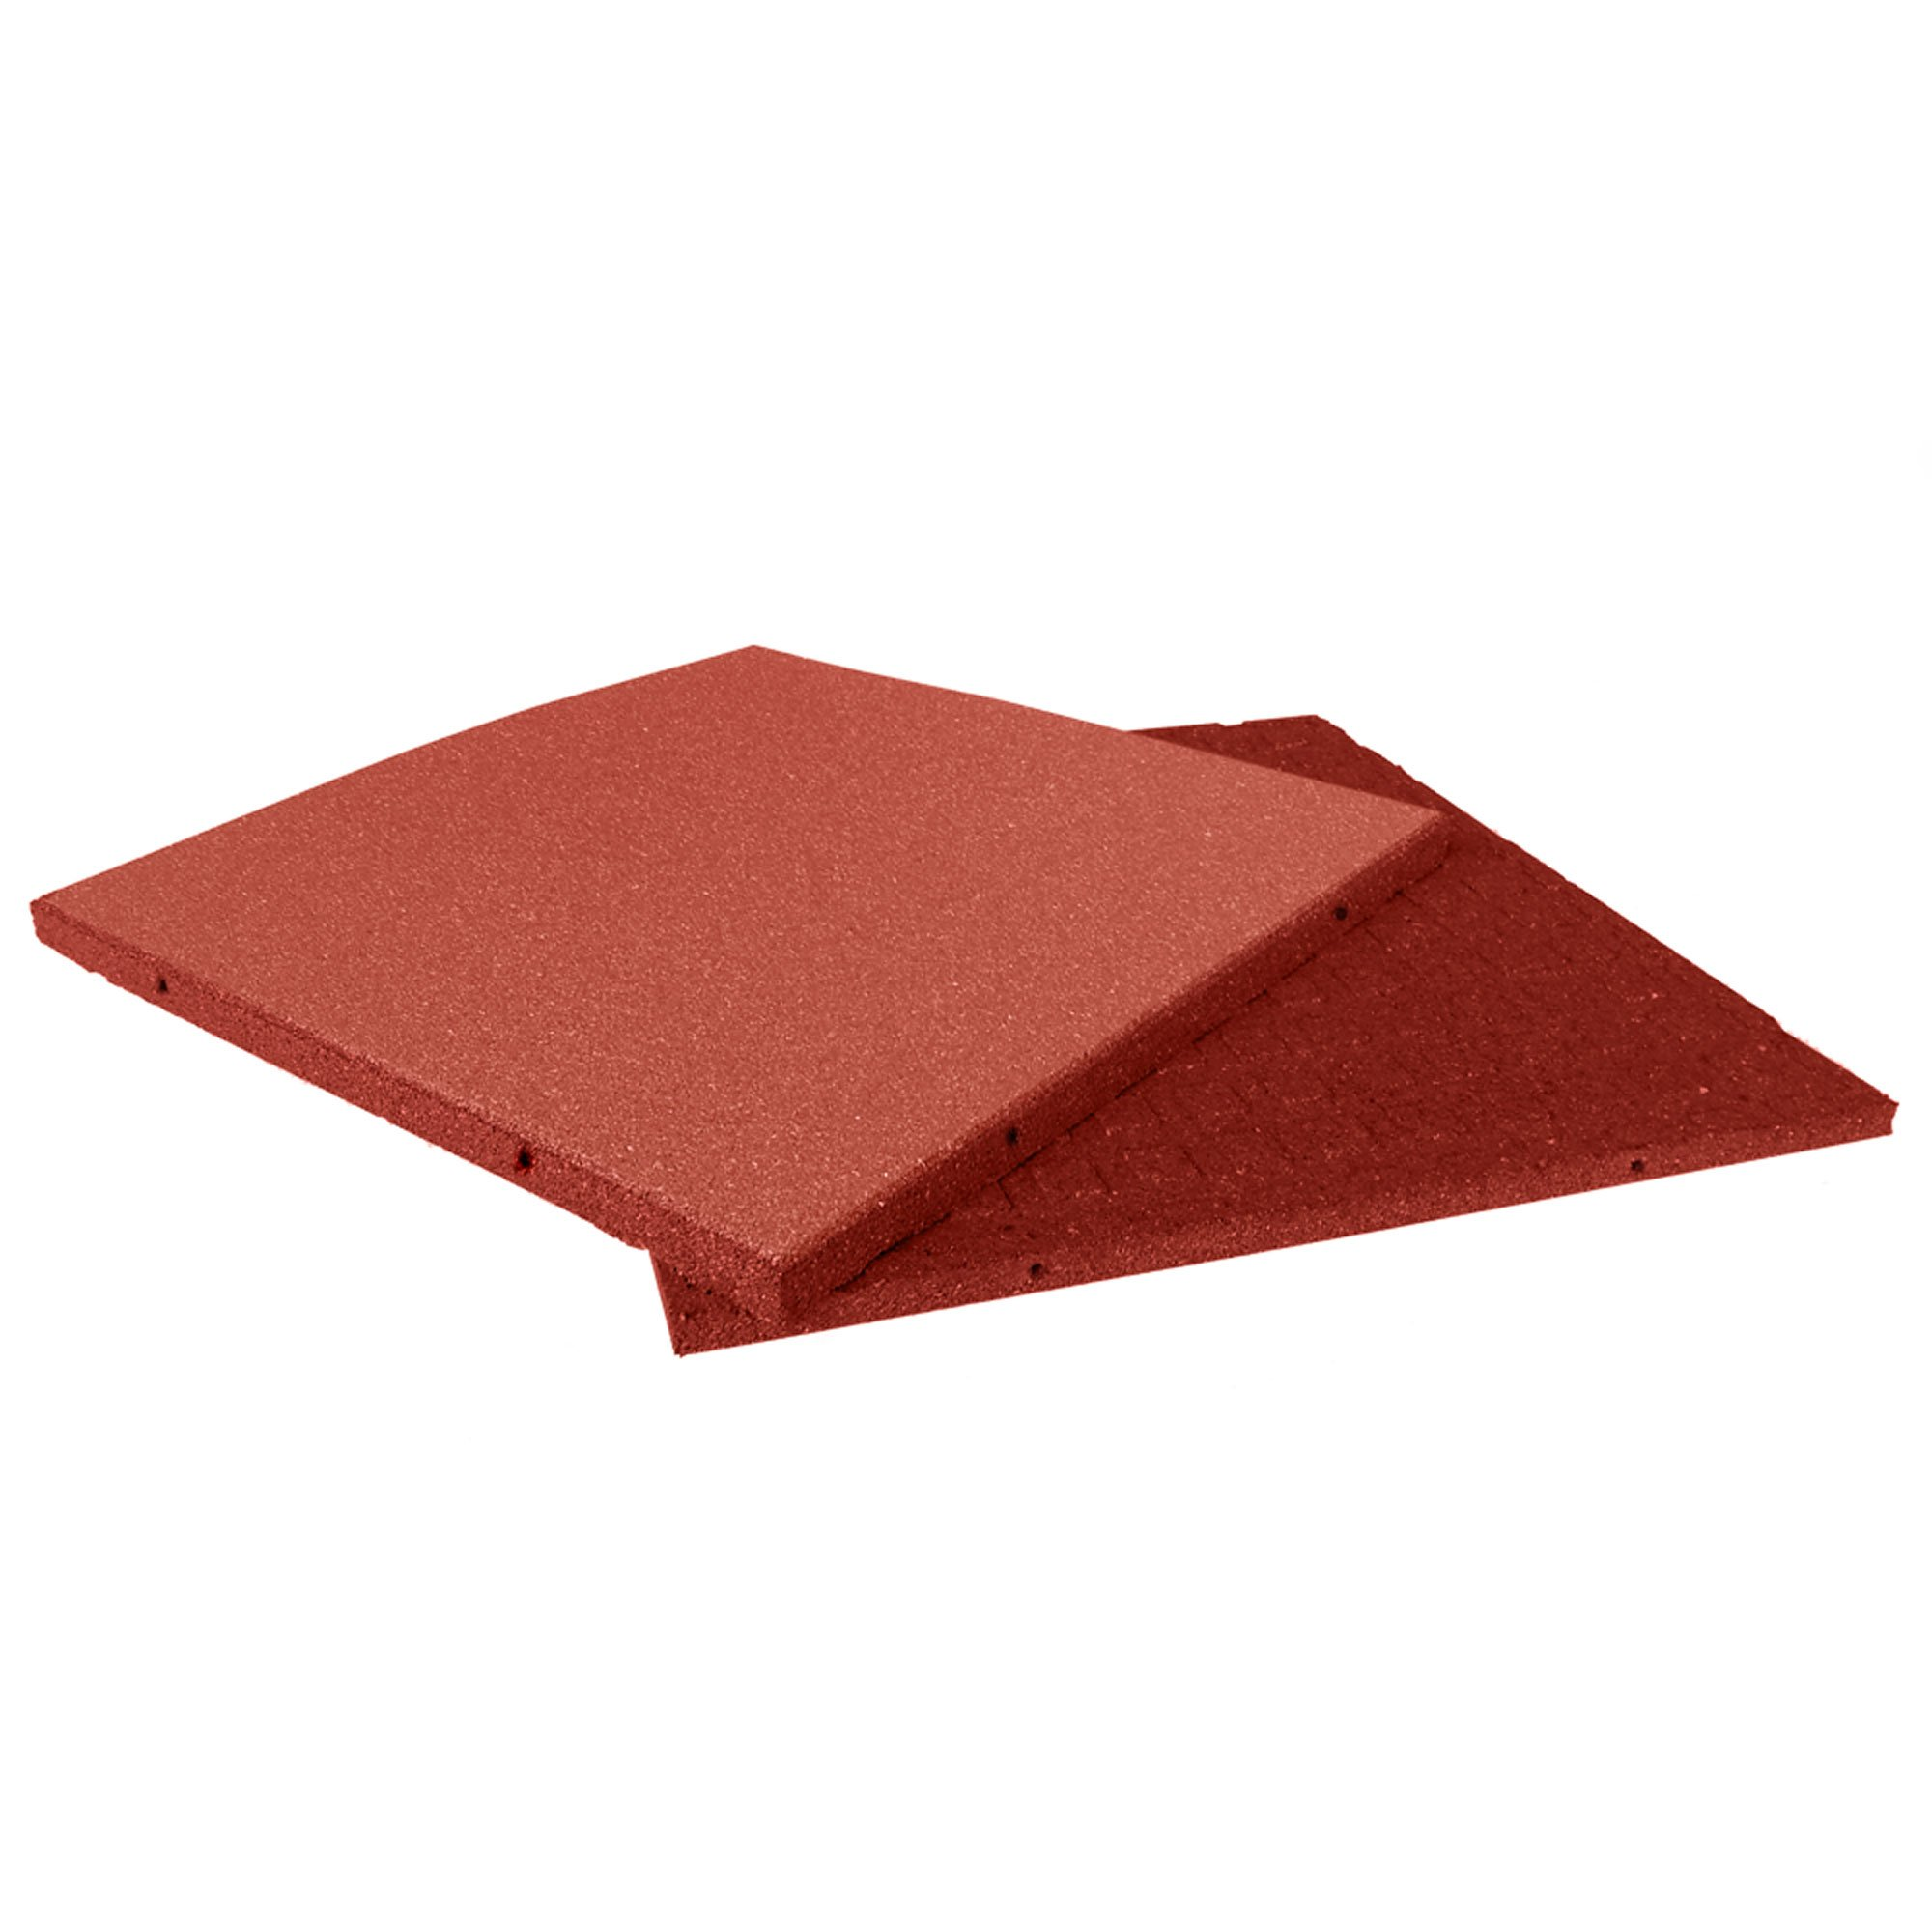 Rubber-Cal Eco-Sport Floor Tile-Pack of 3, Red, 1 x 20 x 20-Inch